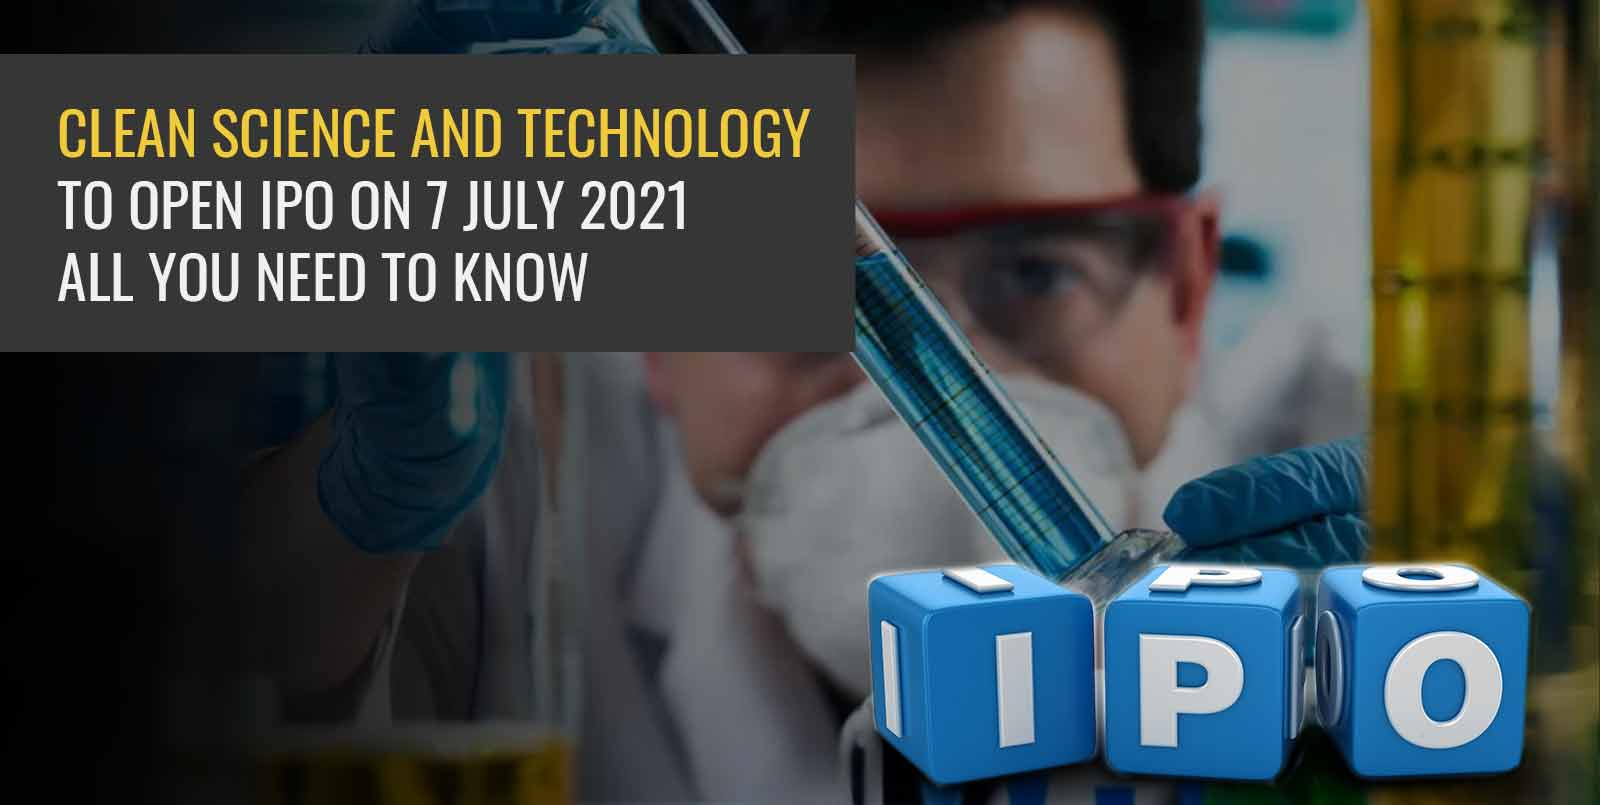 Clean Science and Technology opens IPO on 7 July 2021